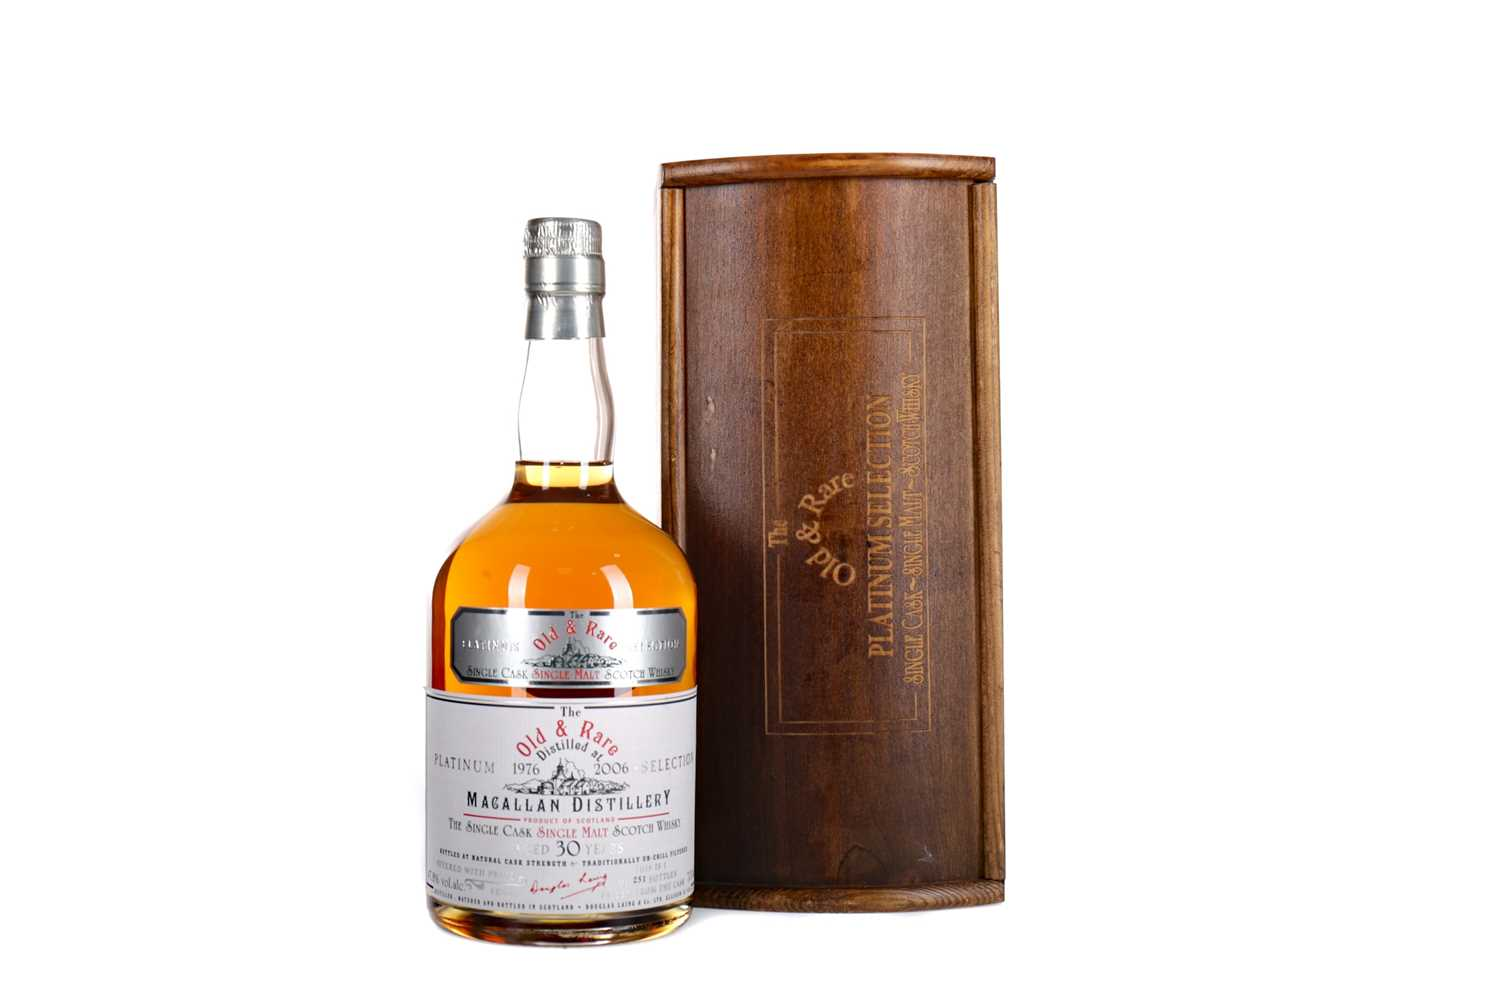 Lot 123 - MACALLAN 1976 OLD & RARE AGED 30 YEARS